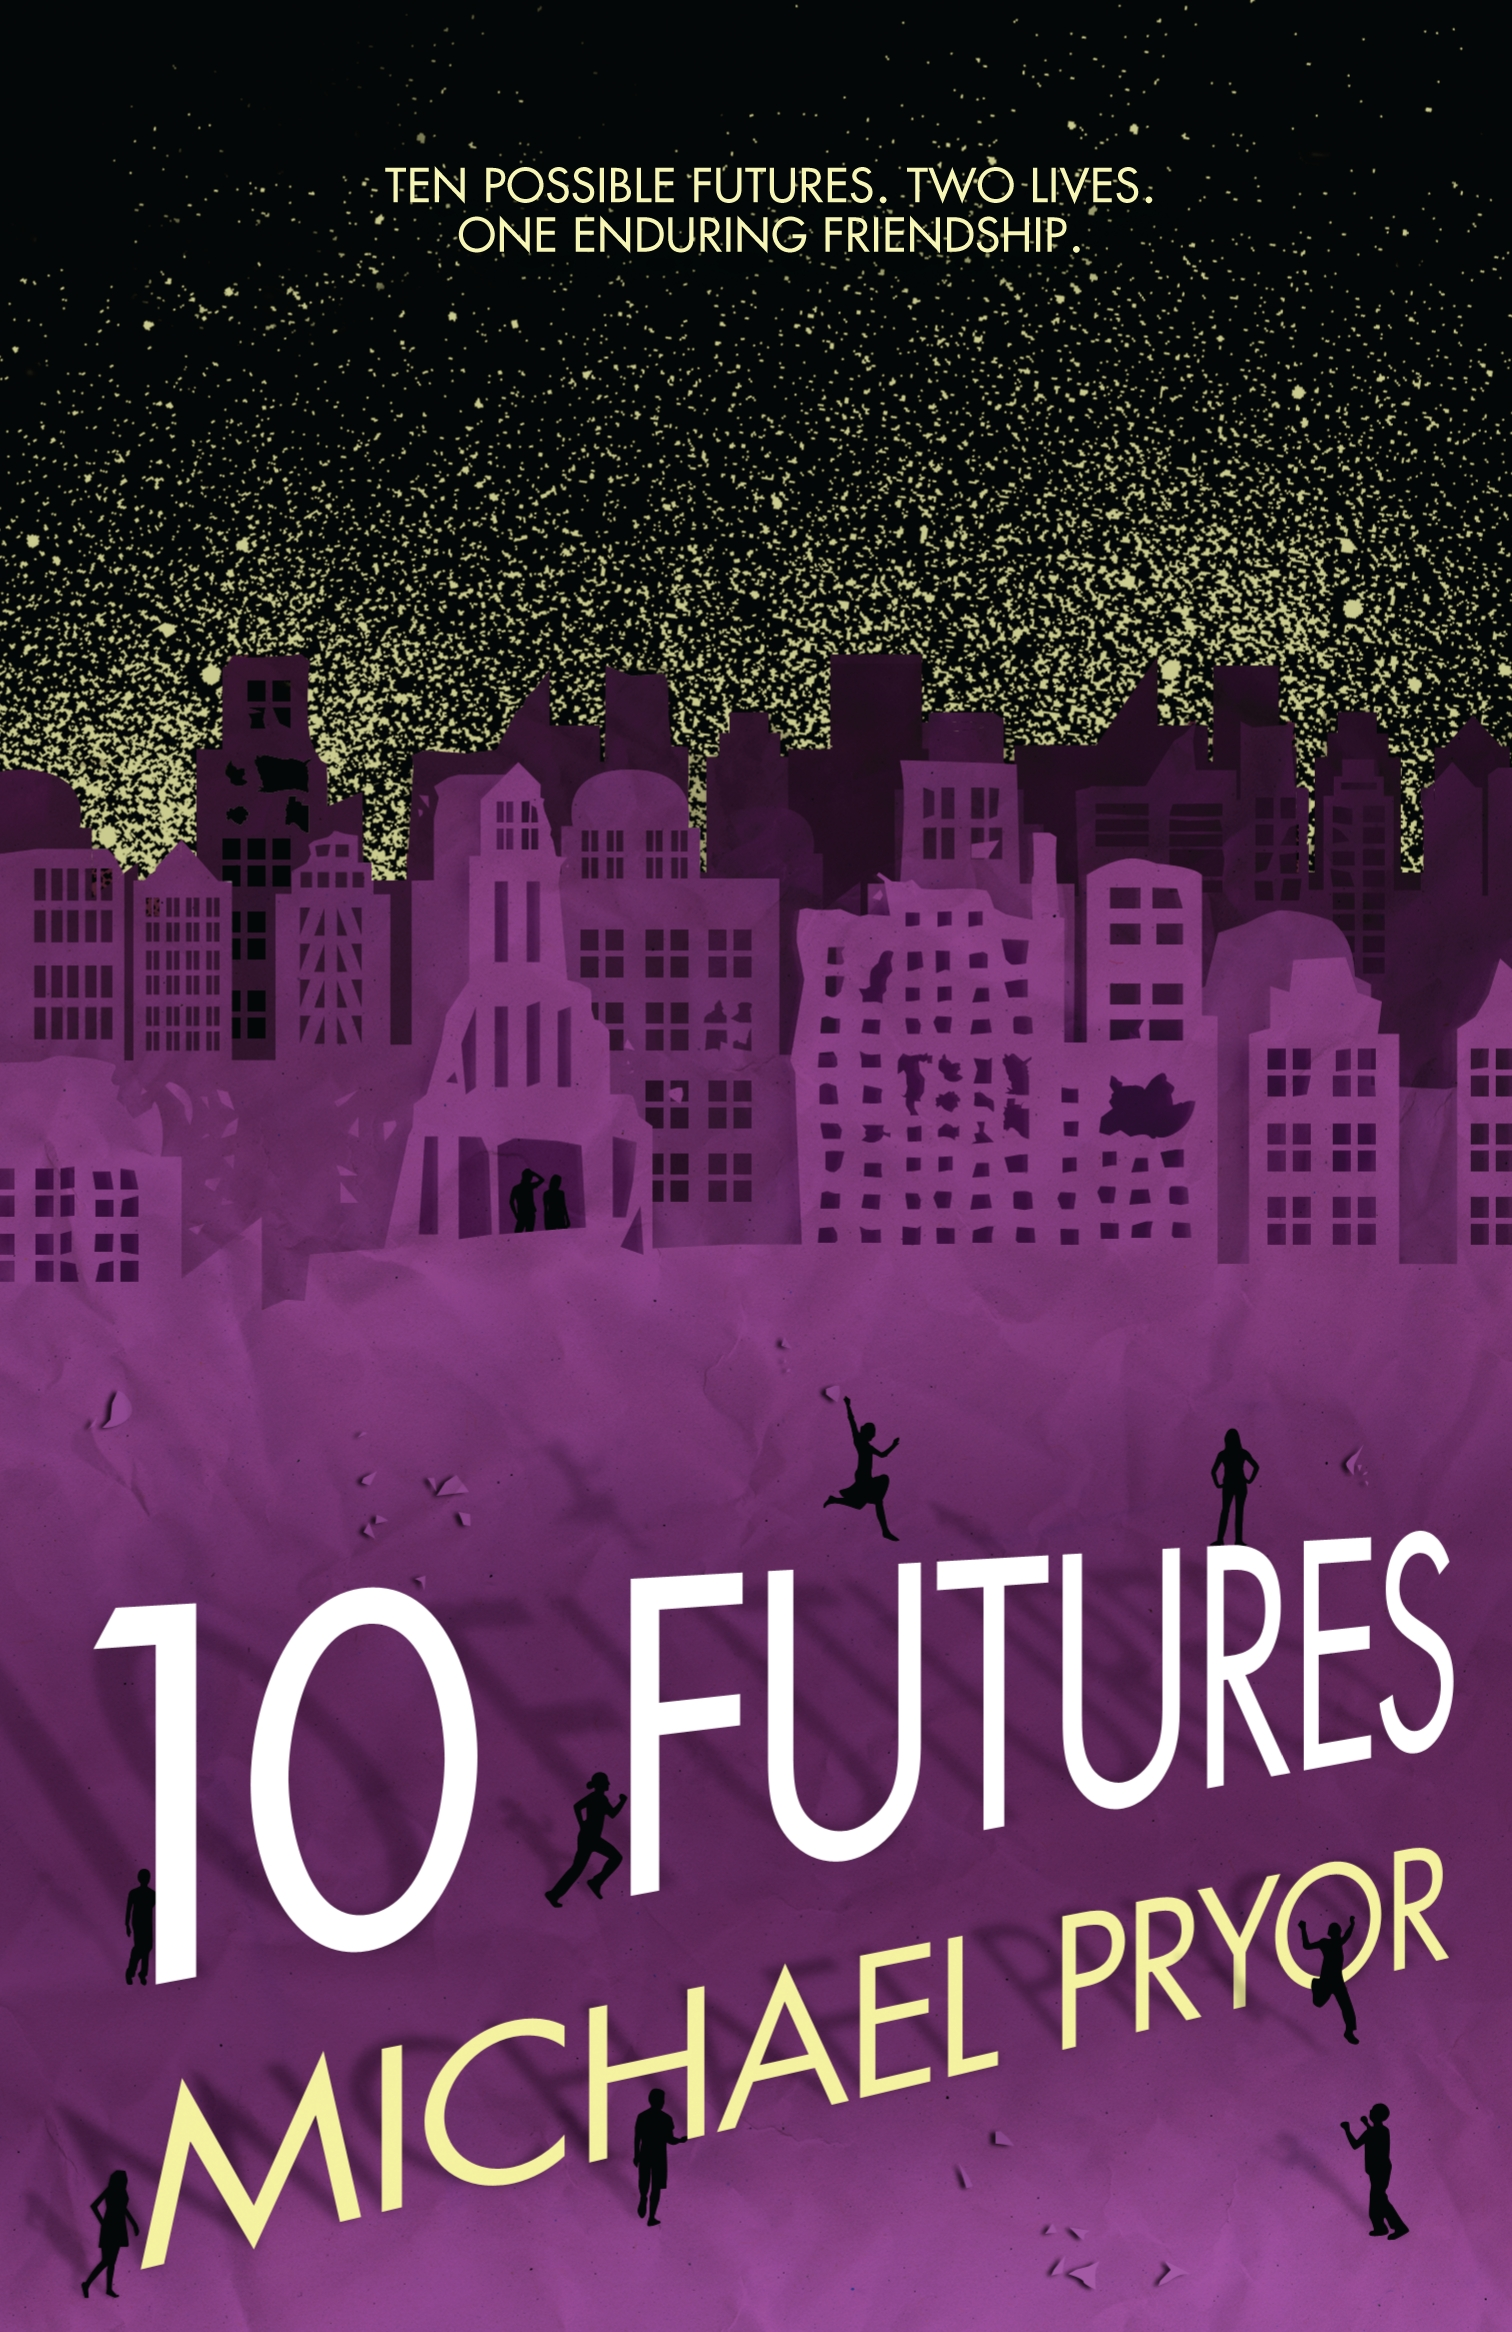 10 Futures by Michael Pryor - Penguin Books Australia